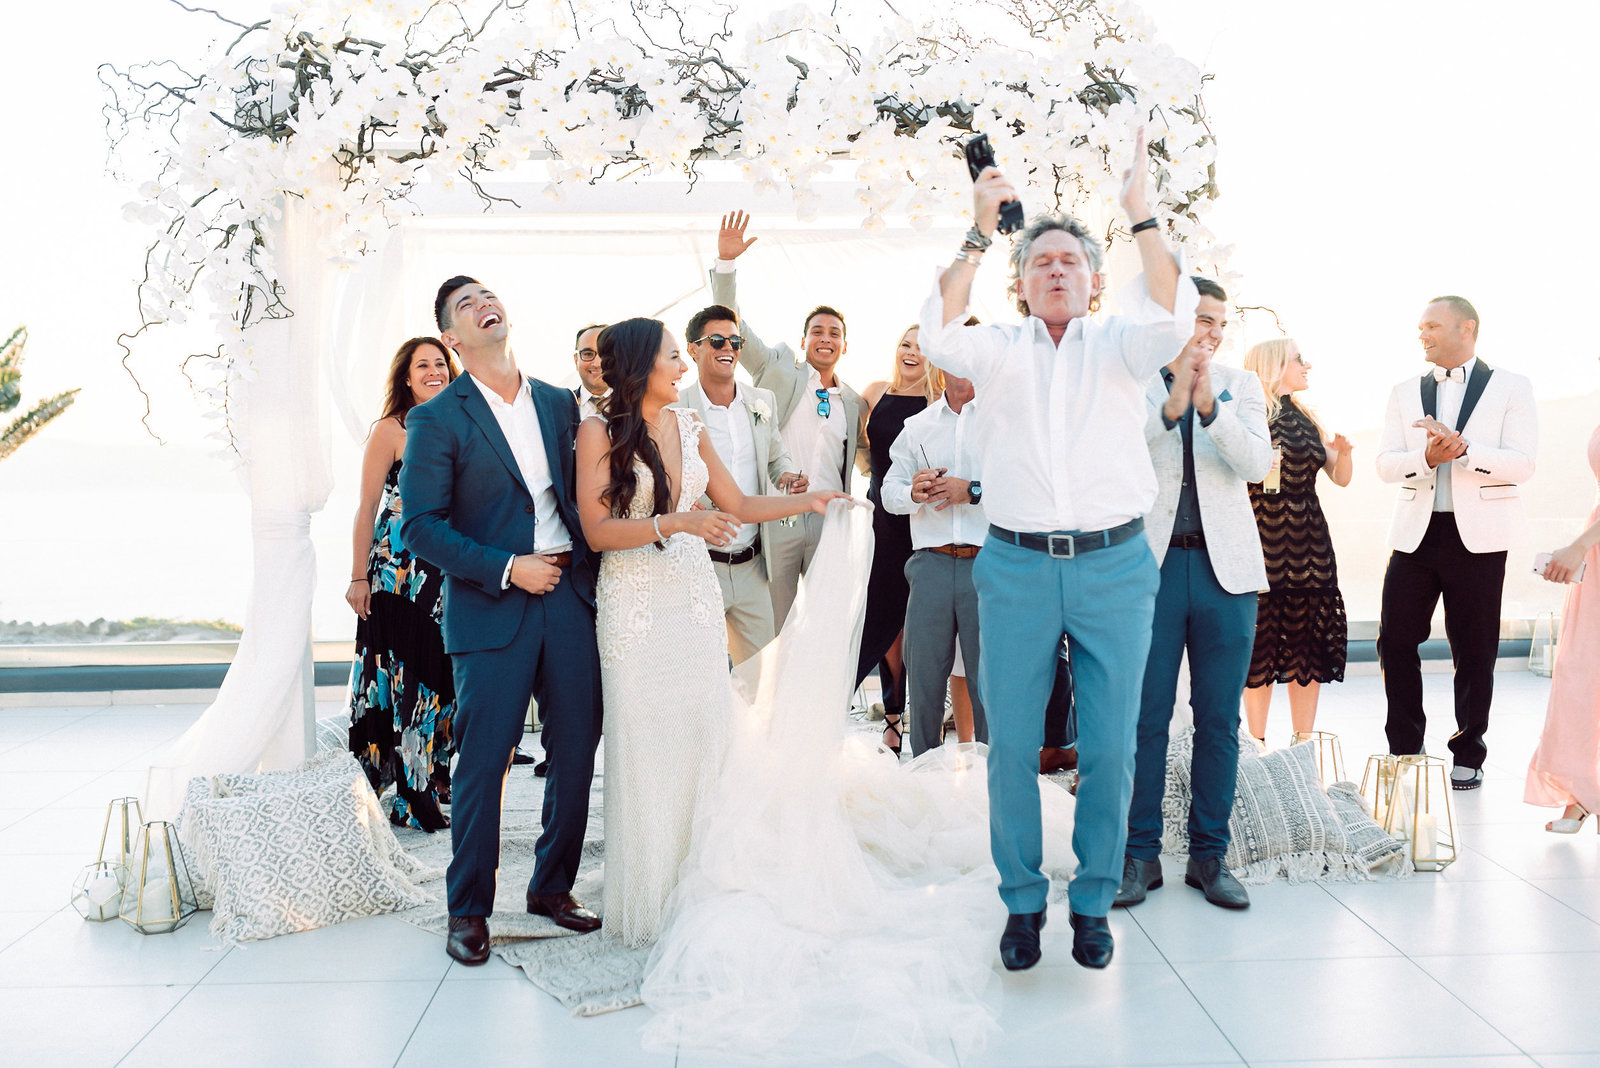 Justin_Taylor_Santorini_Wedding_Jana_Williams_Photography-5237